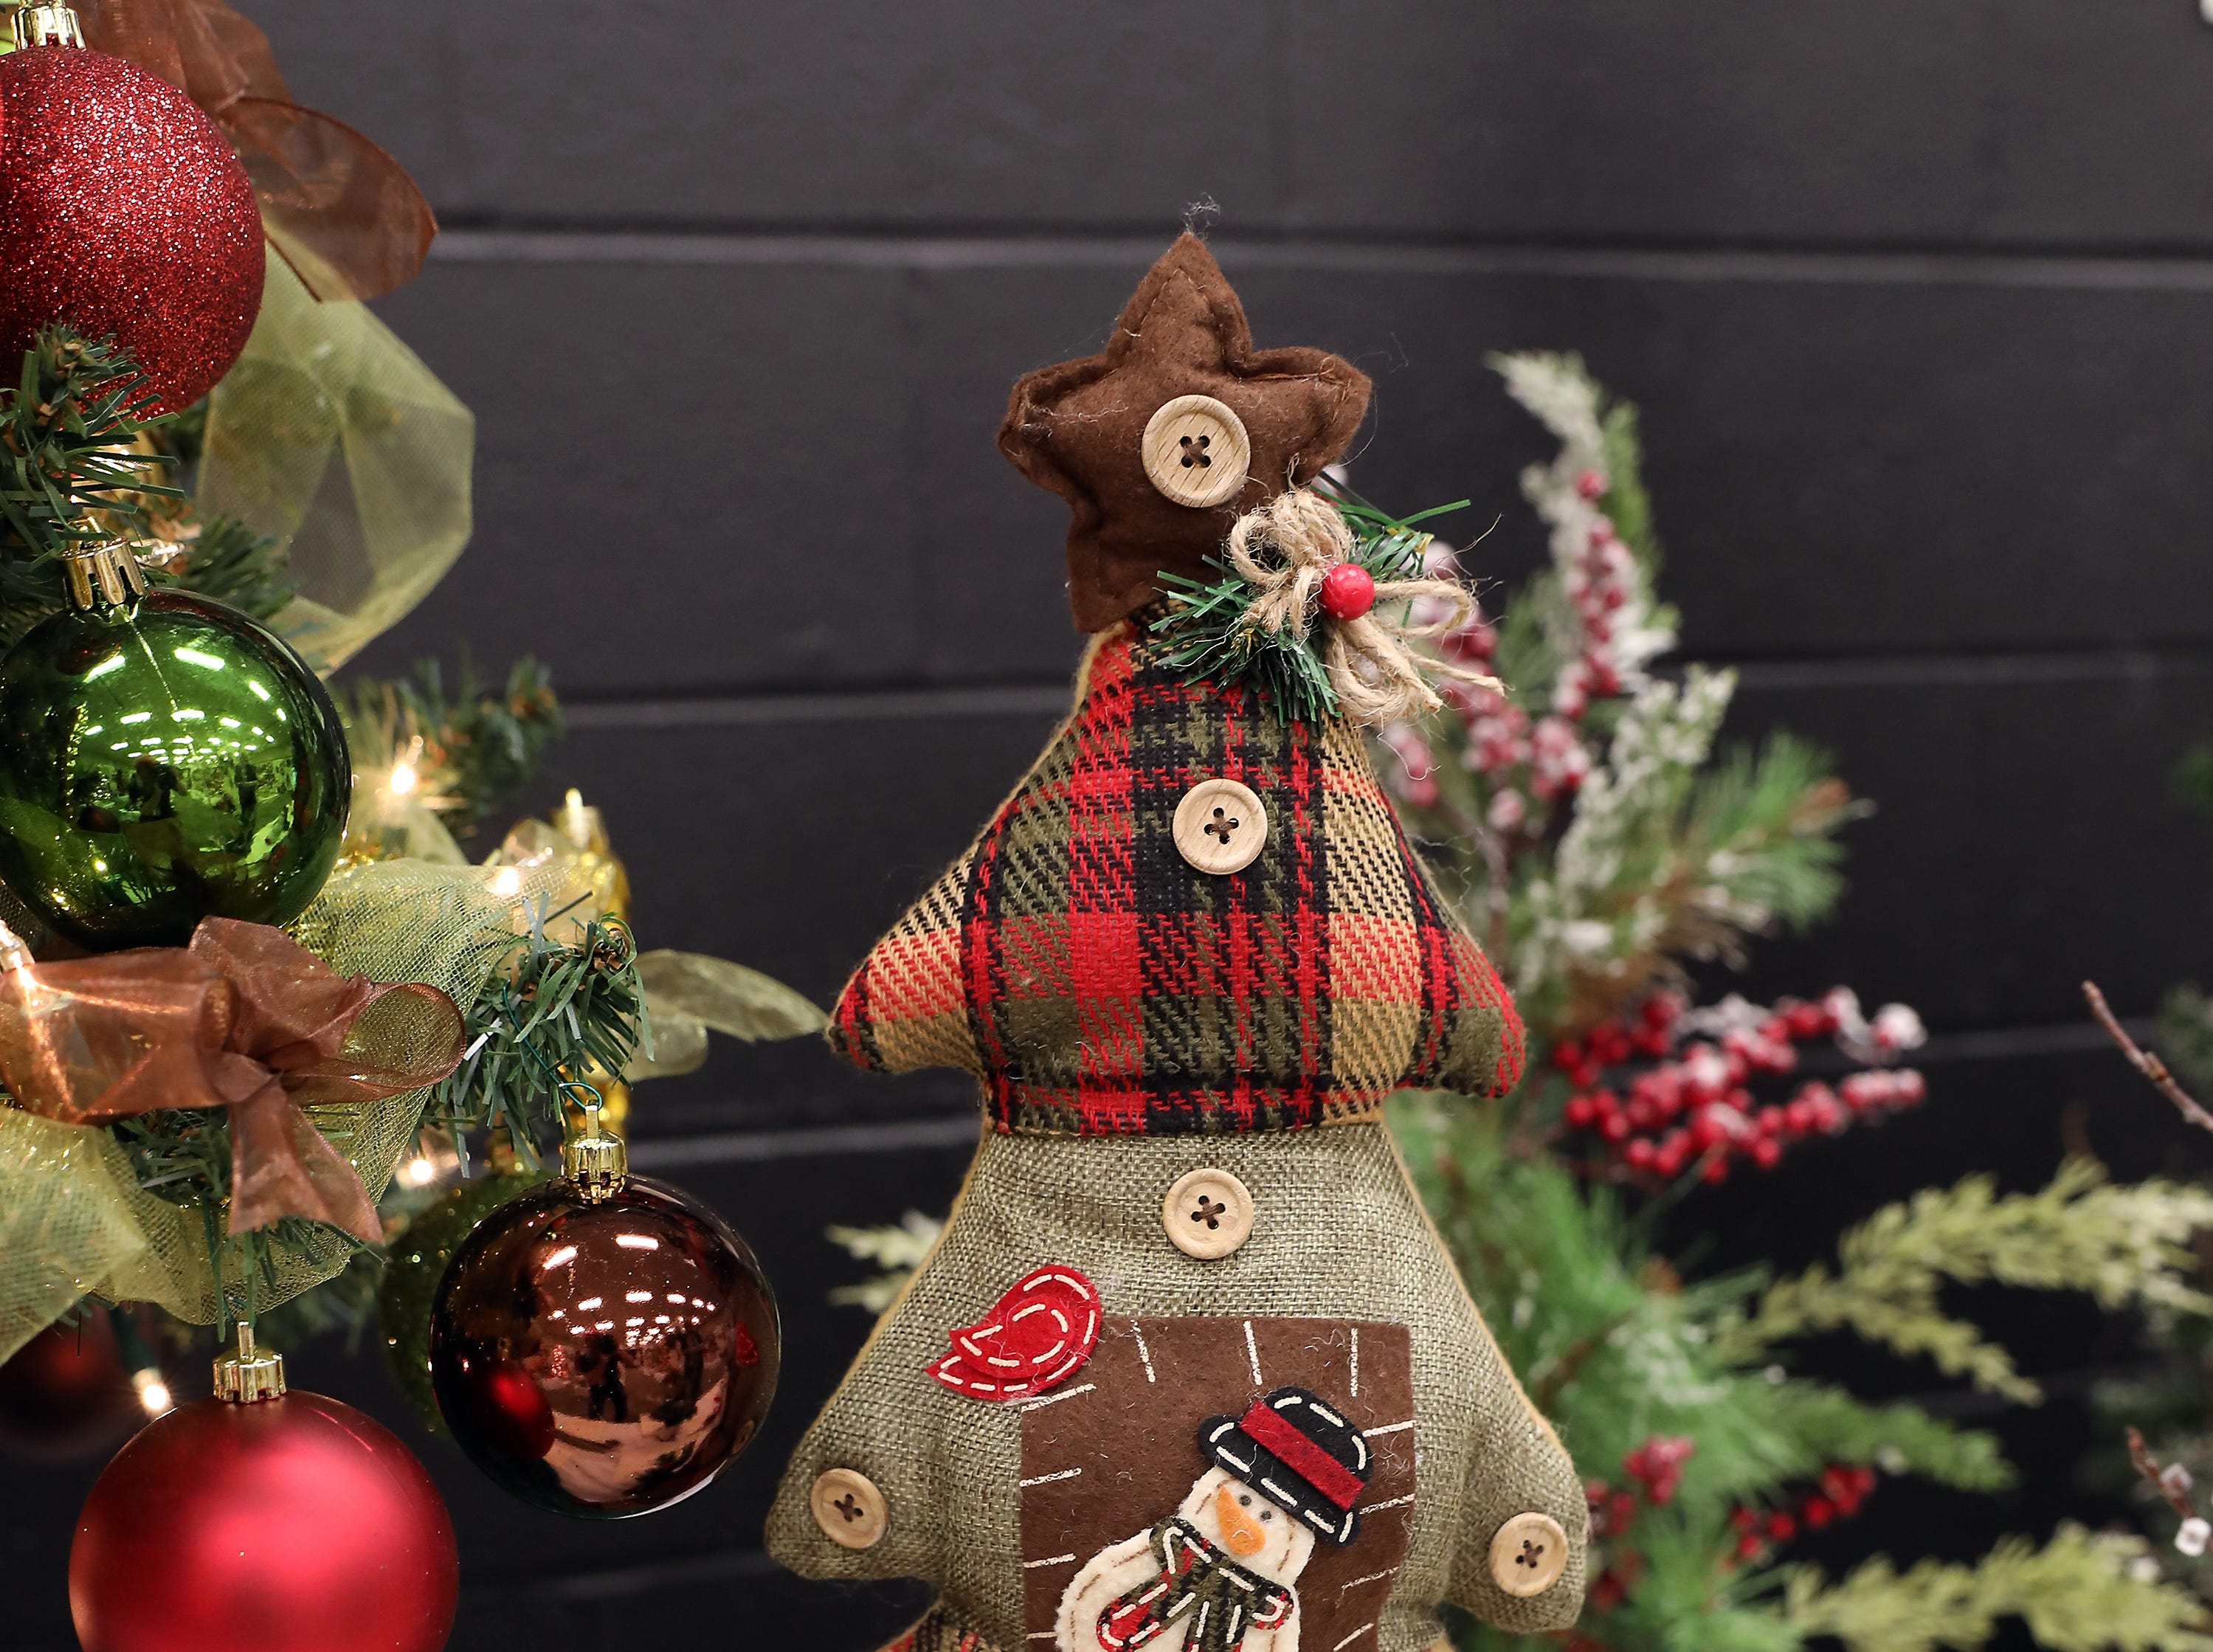 "8	9:15 AM	Buffalo Wild Wings	Mini Tree	An Old Fashioned Holiday	This 20"" cloth plaid Christmas tree will bring warmth to your holidays with red, green and brown plaid, buttons, snowmen, pine and pine cones.		$50 Buffalo Wild Wings gift card."